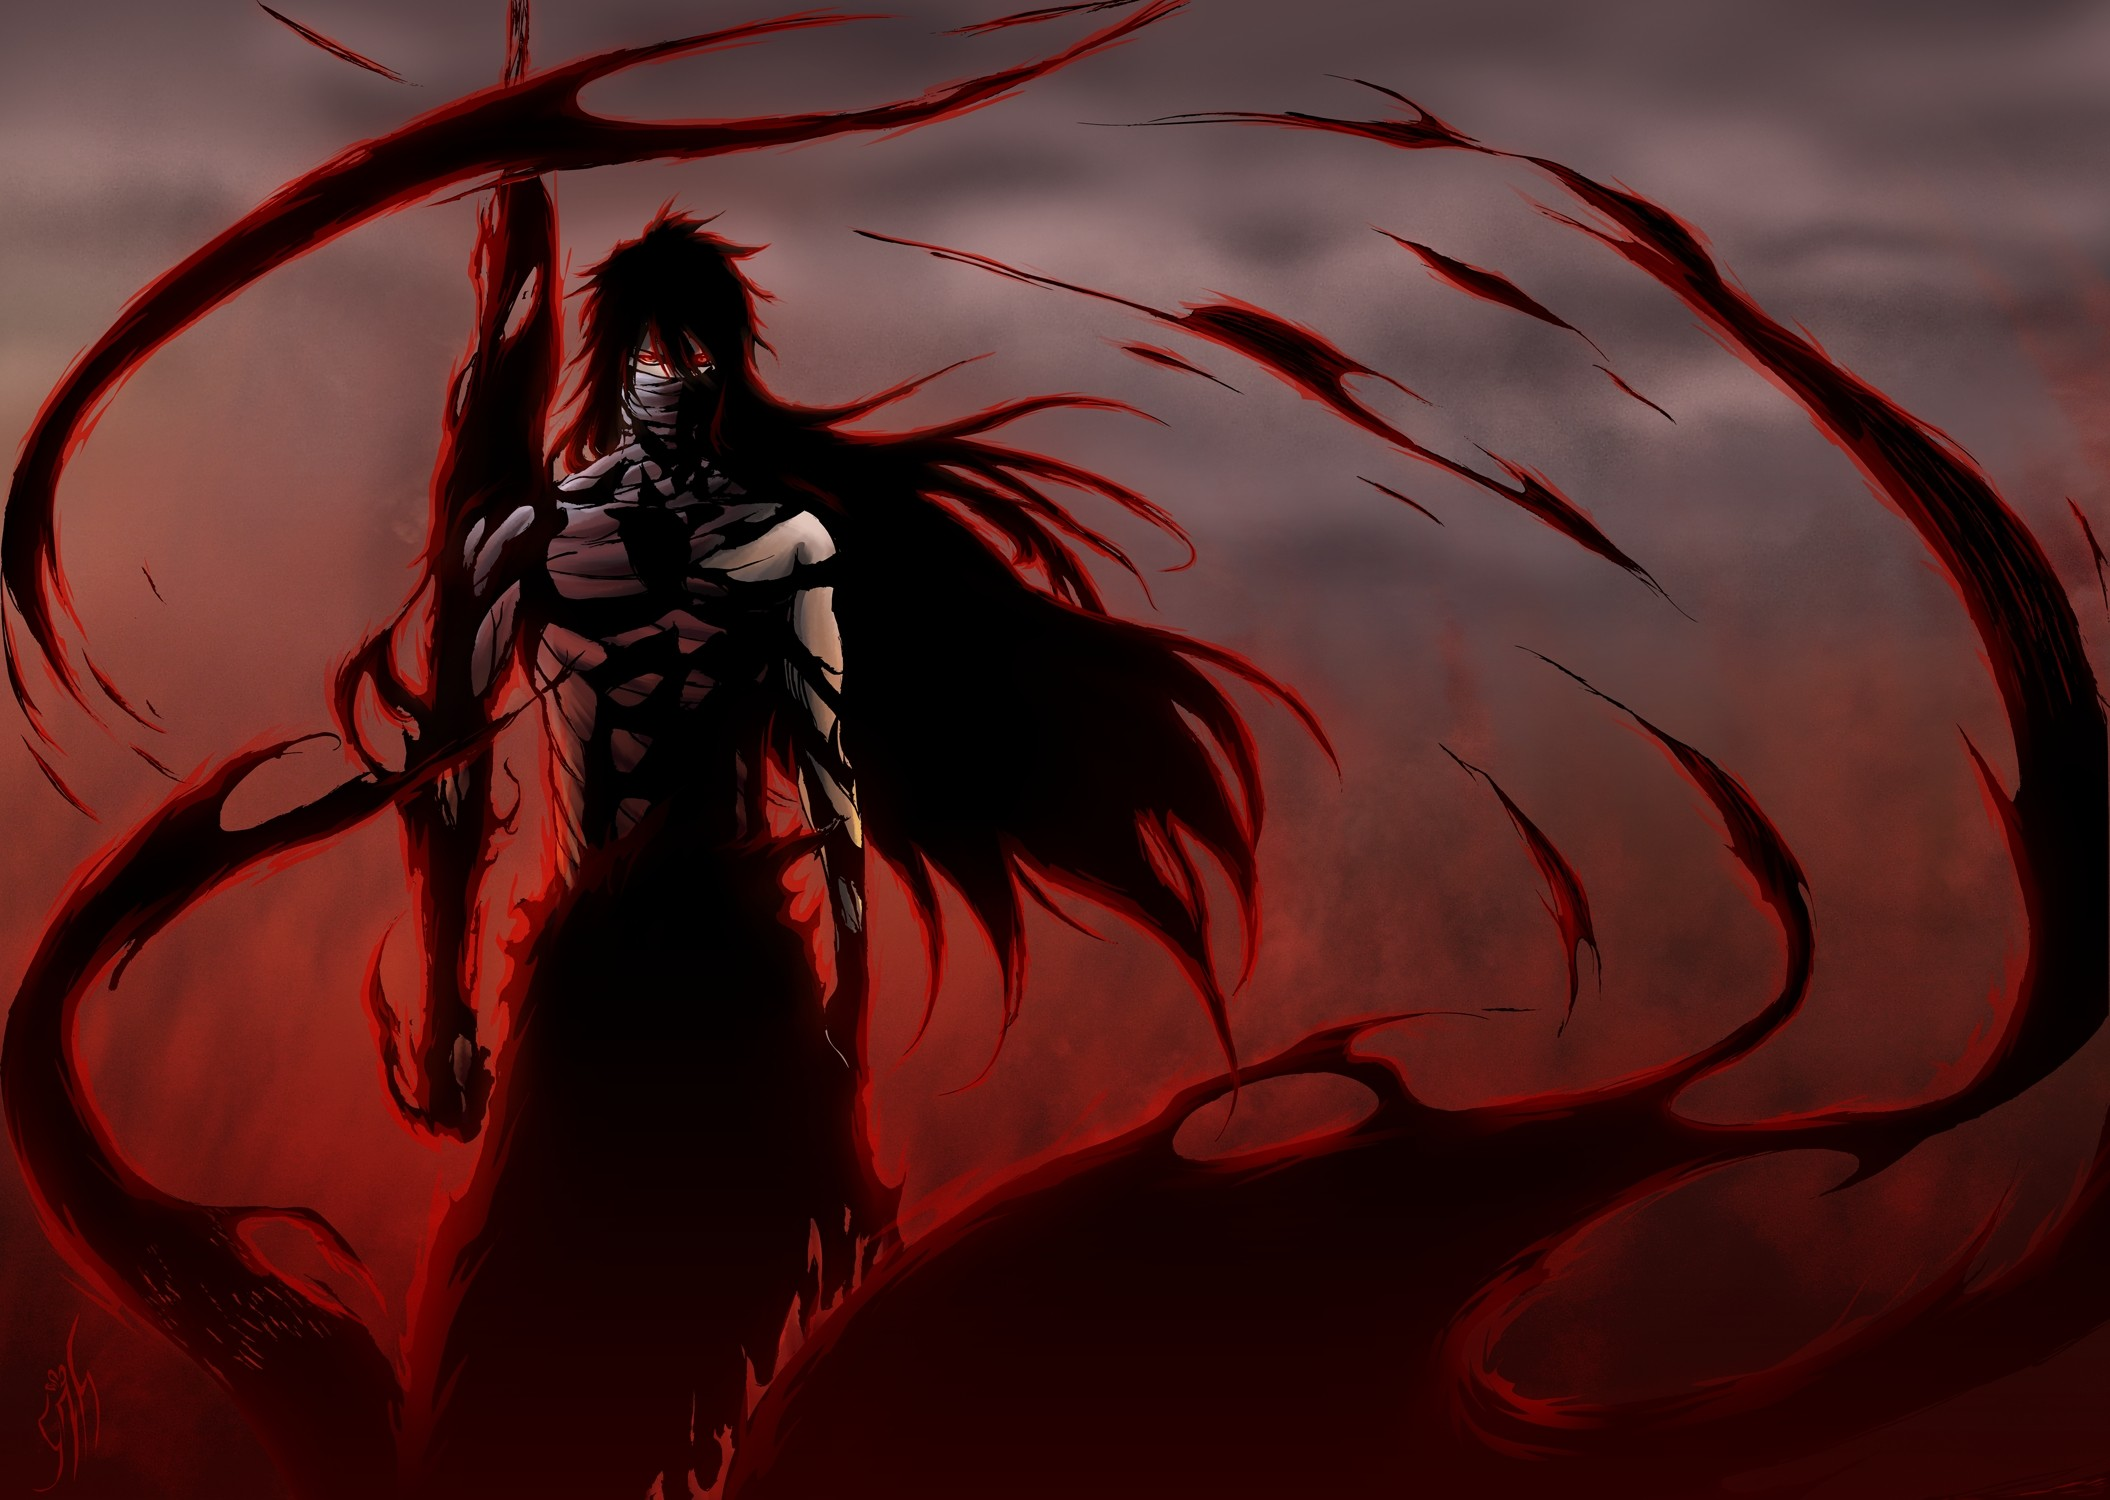 1920x1080 Bleach 484 Manga Chapter Review Soul King Aizen Was Good Af Afaaf 1 4